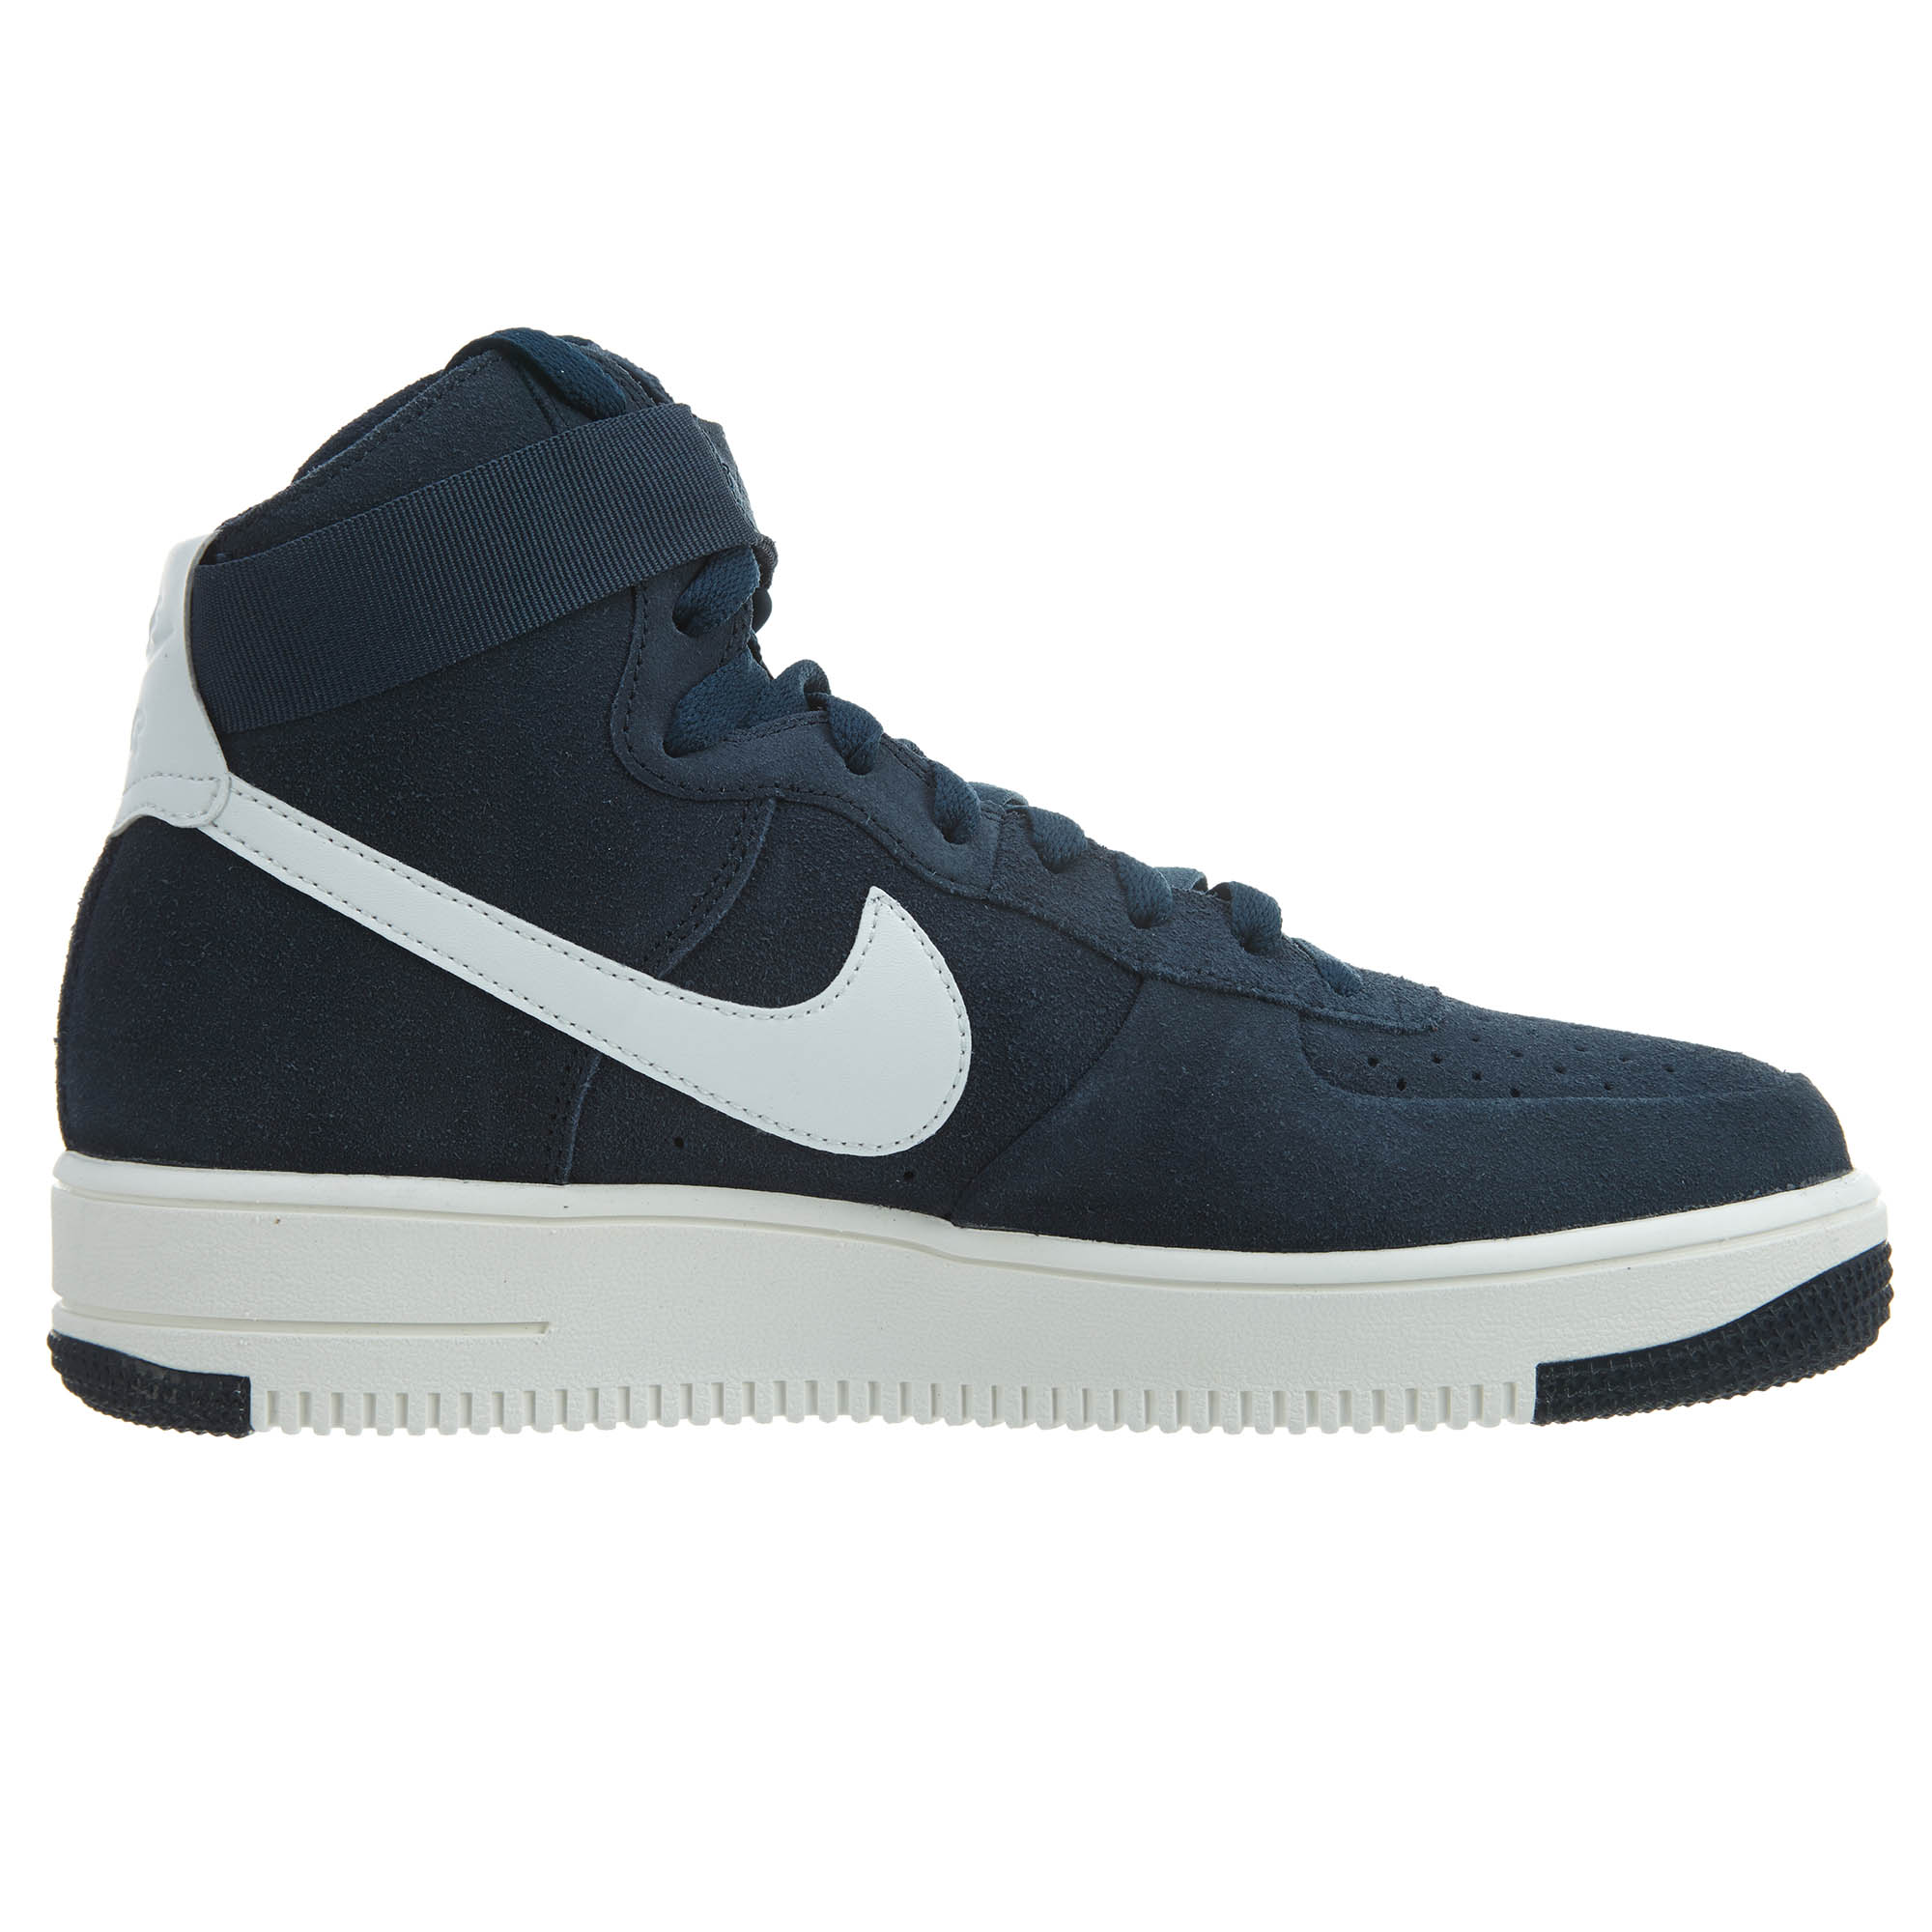 Nike Air Force 1 Ultraforce Lthr Armory Navy/Summit White